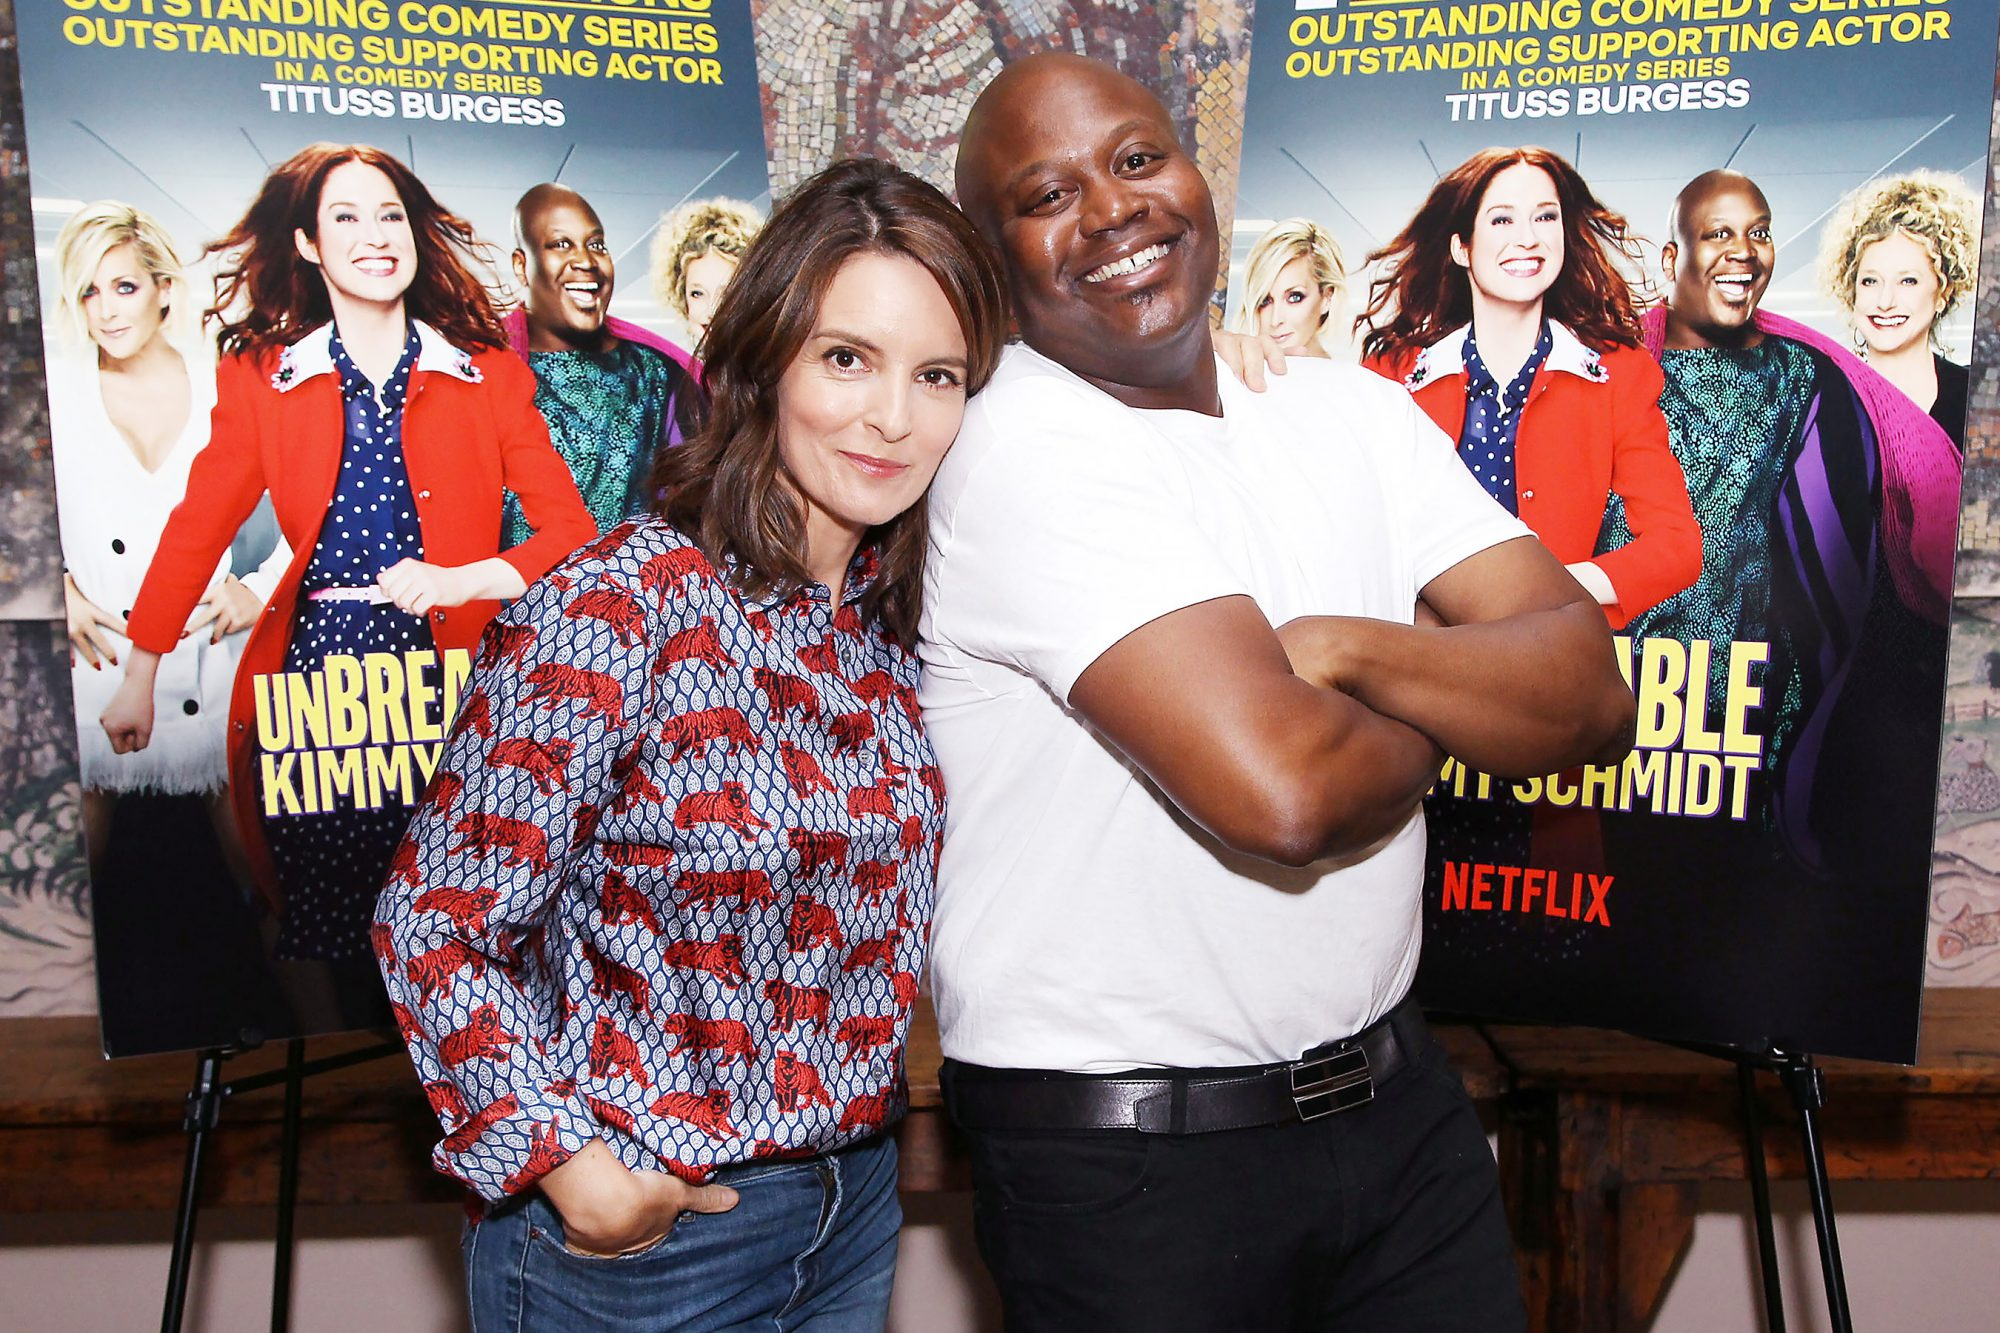 Unbreakable Kimmy Schmidt: Conversation with Tina Fey and Tituss Burgess, New York, USA - 14 Aug 2018